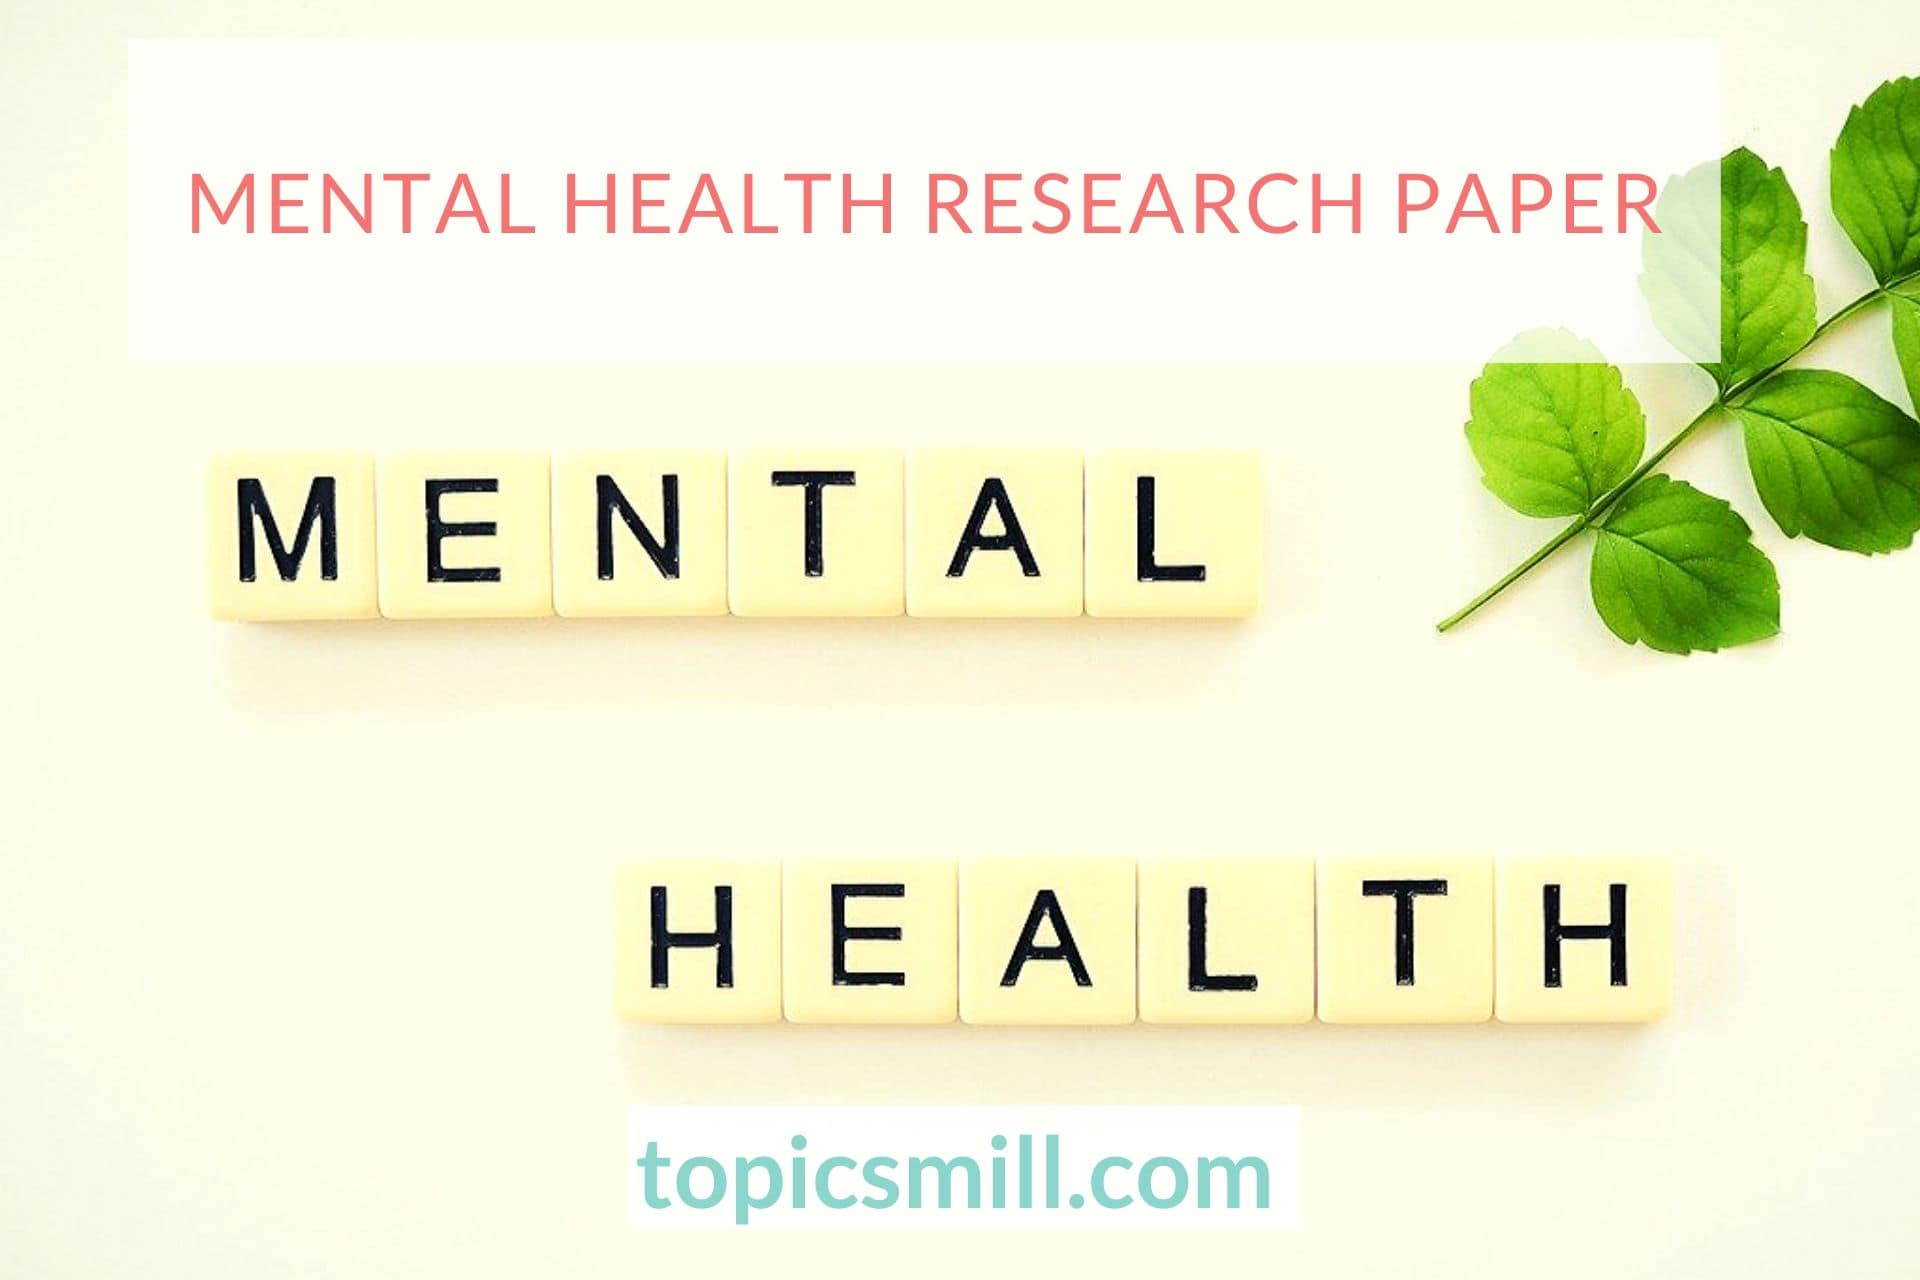 Mental illness research paper topics tips to write a great cv